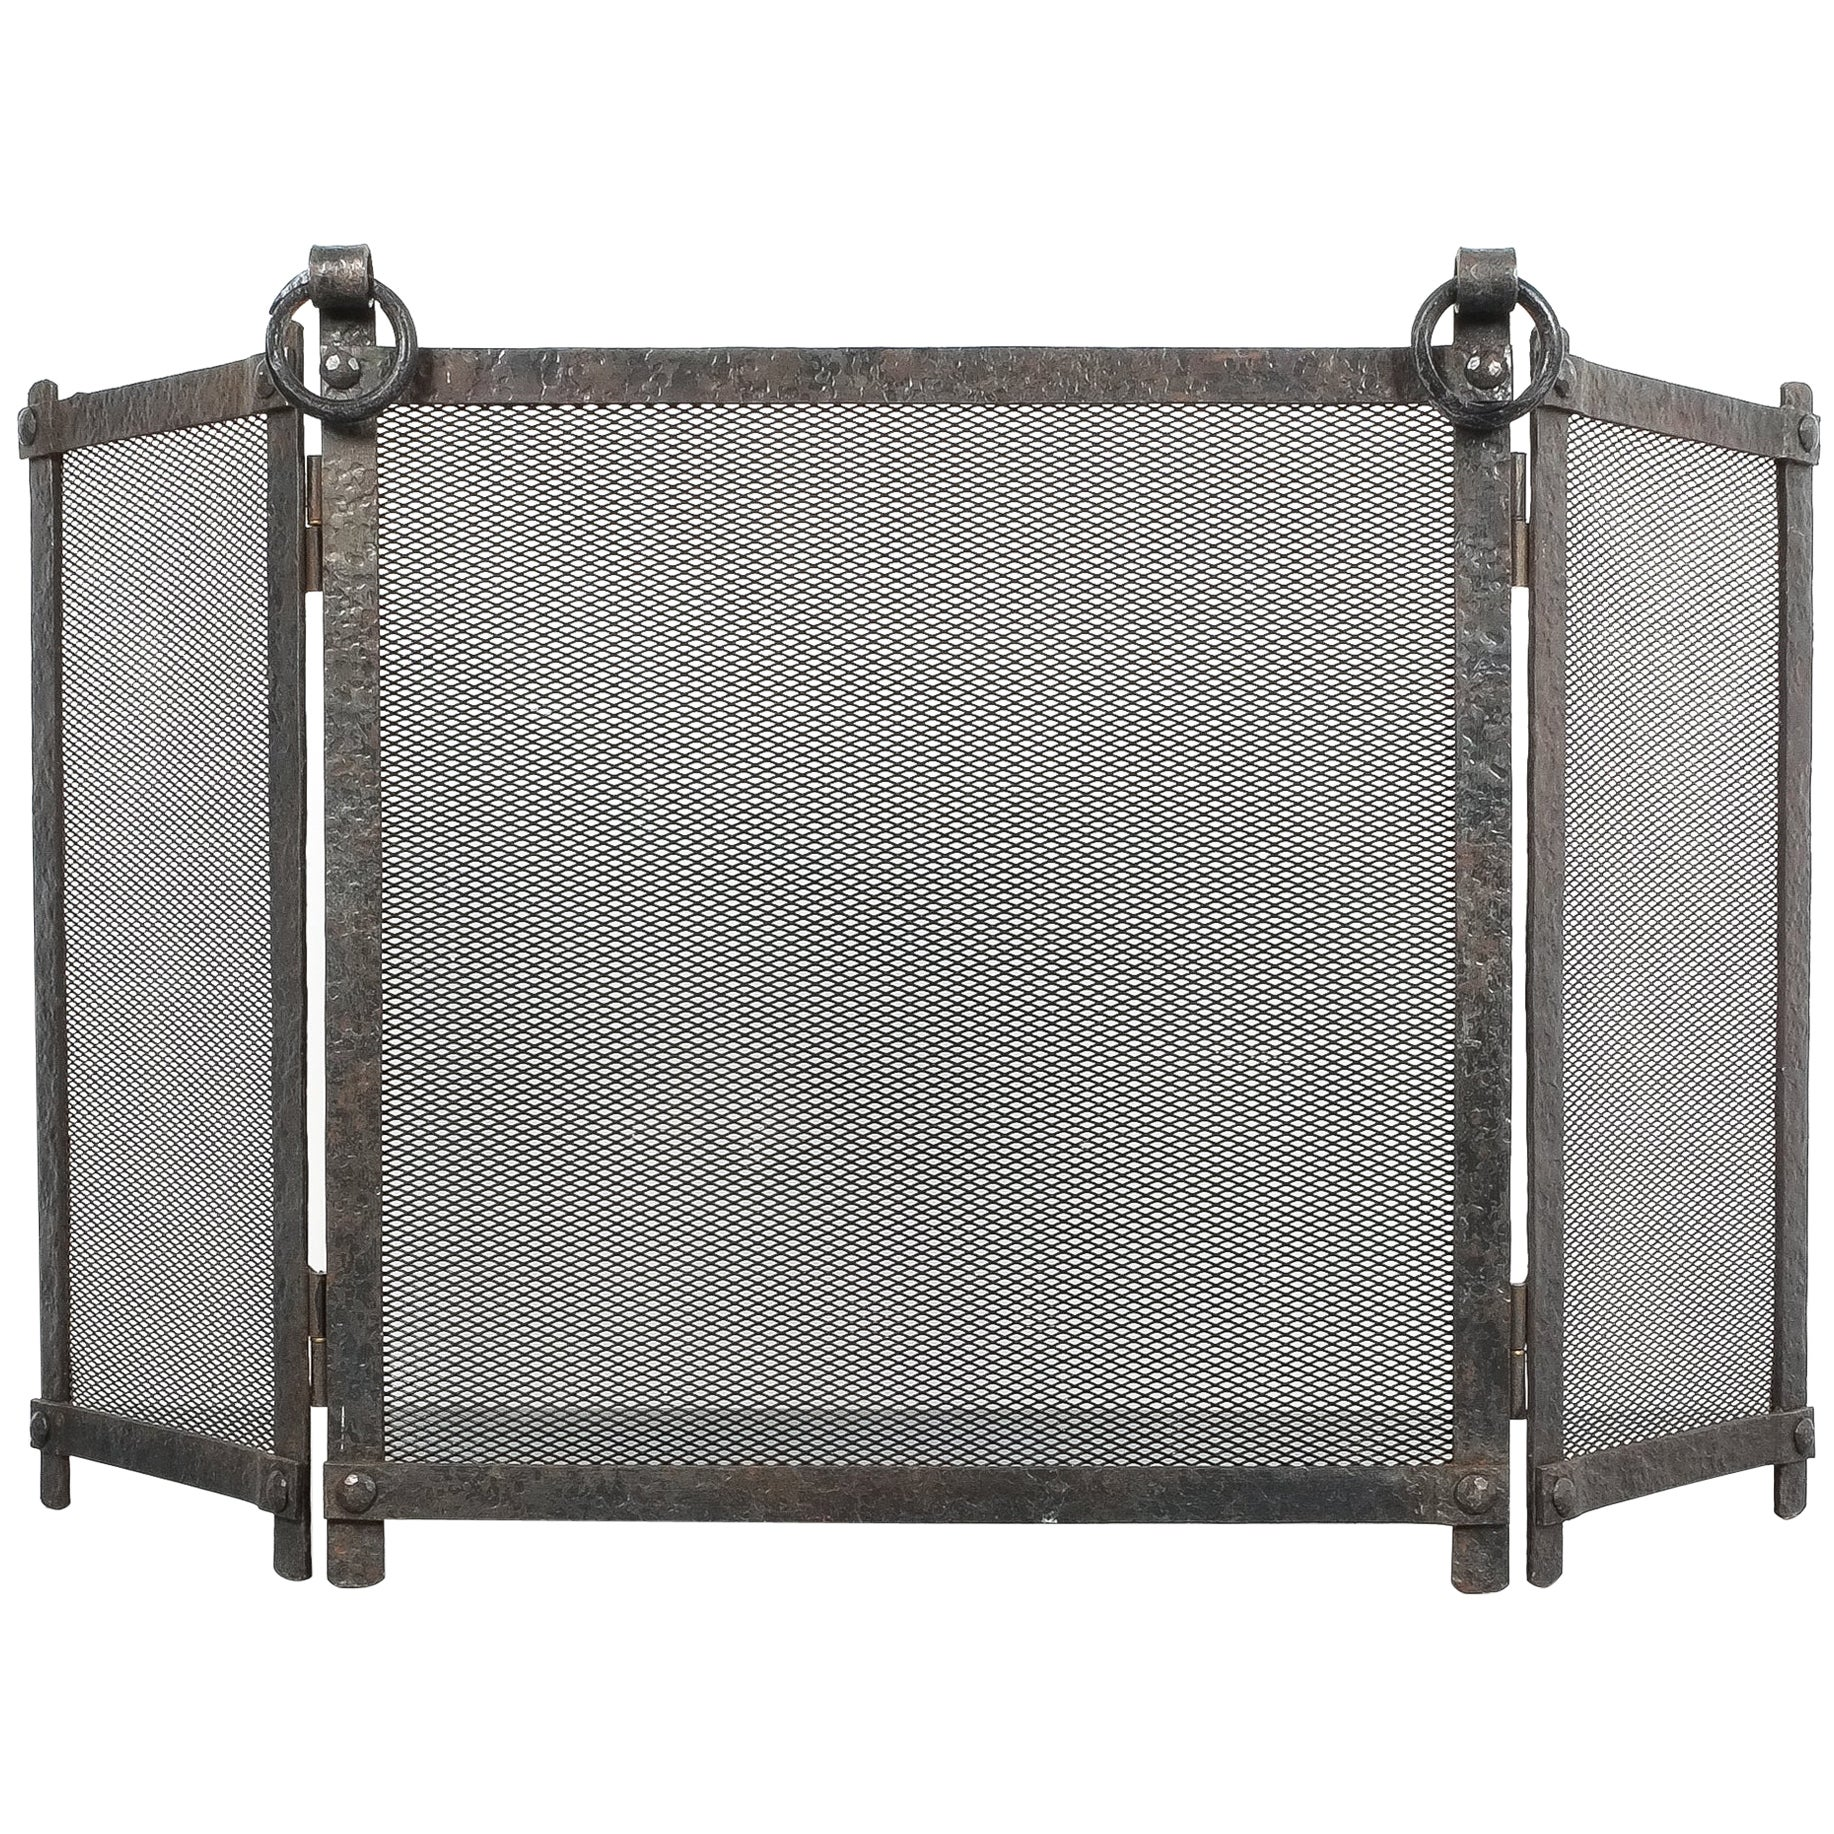 Art Deco Fire Screen from Forged Wrought Iron